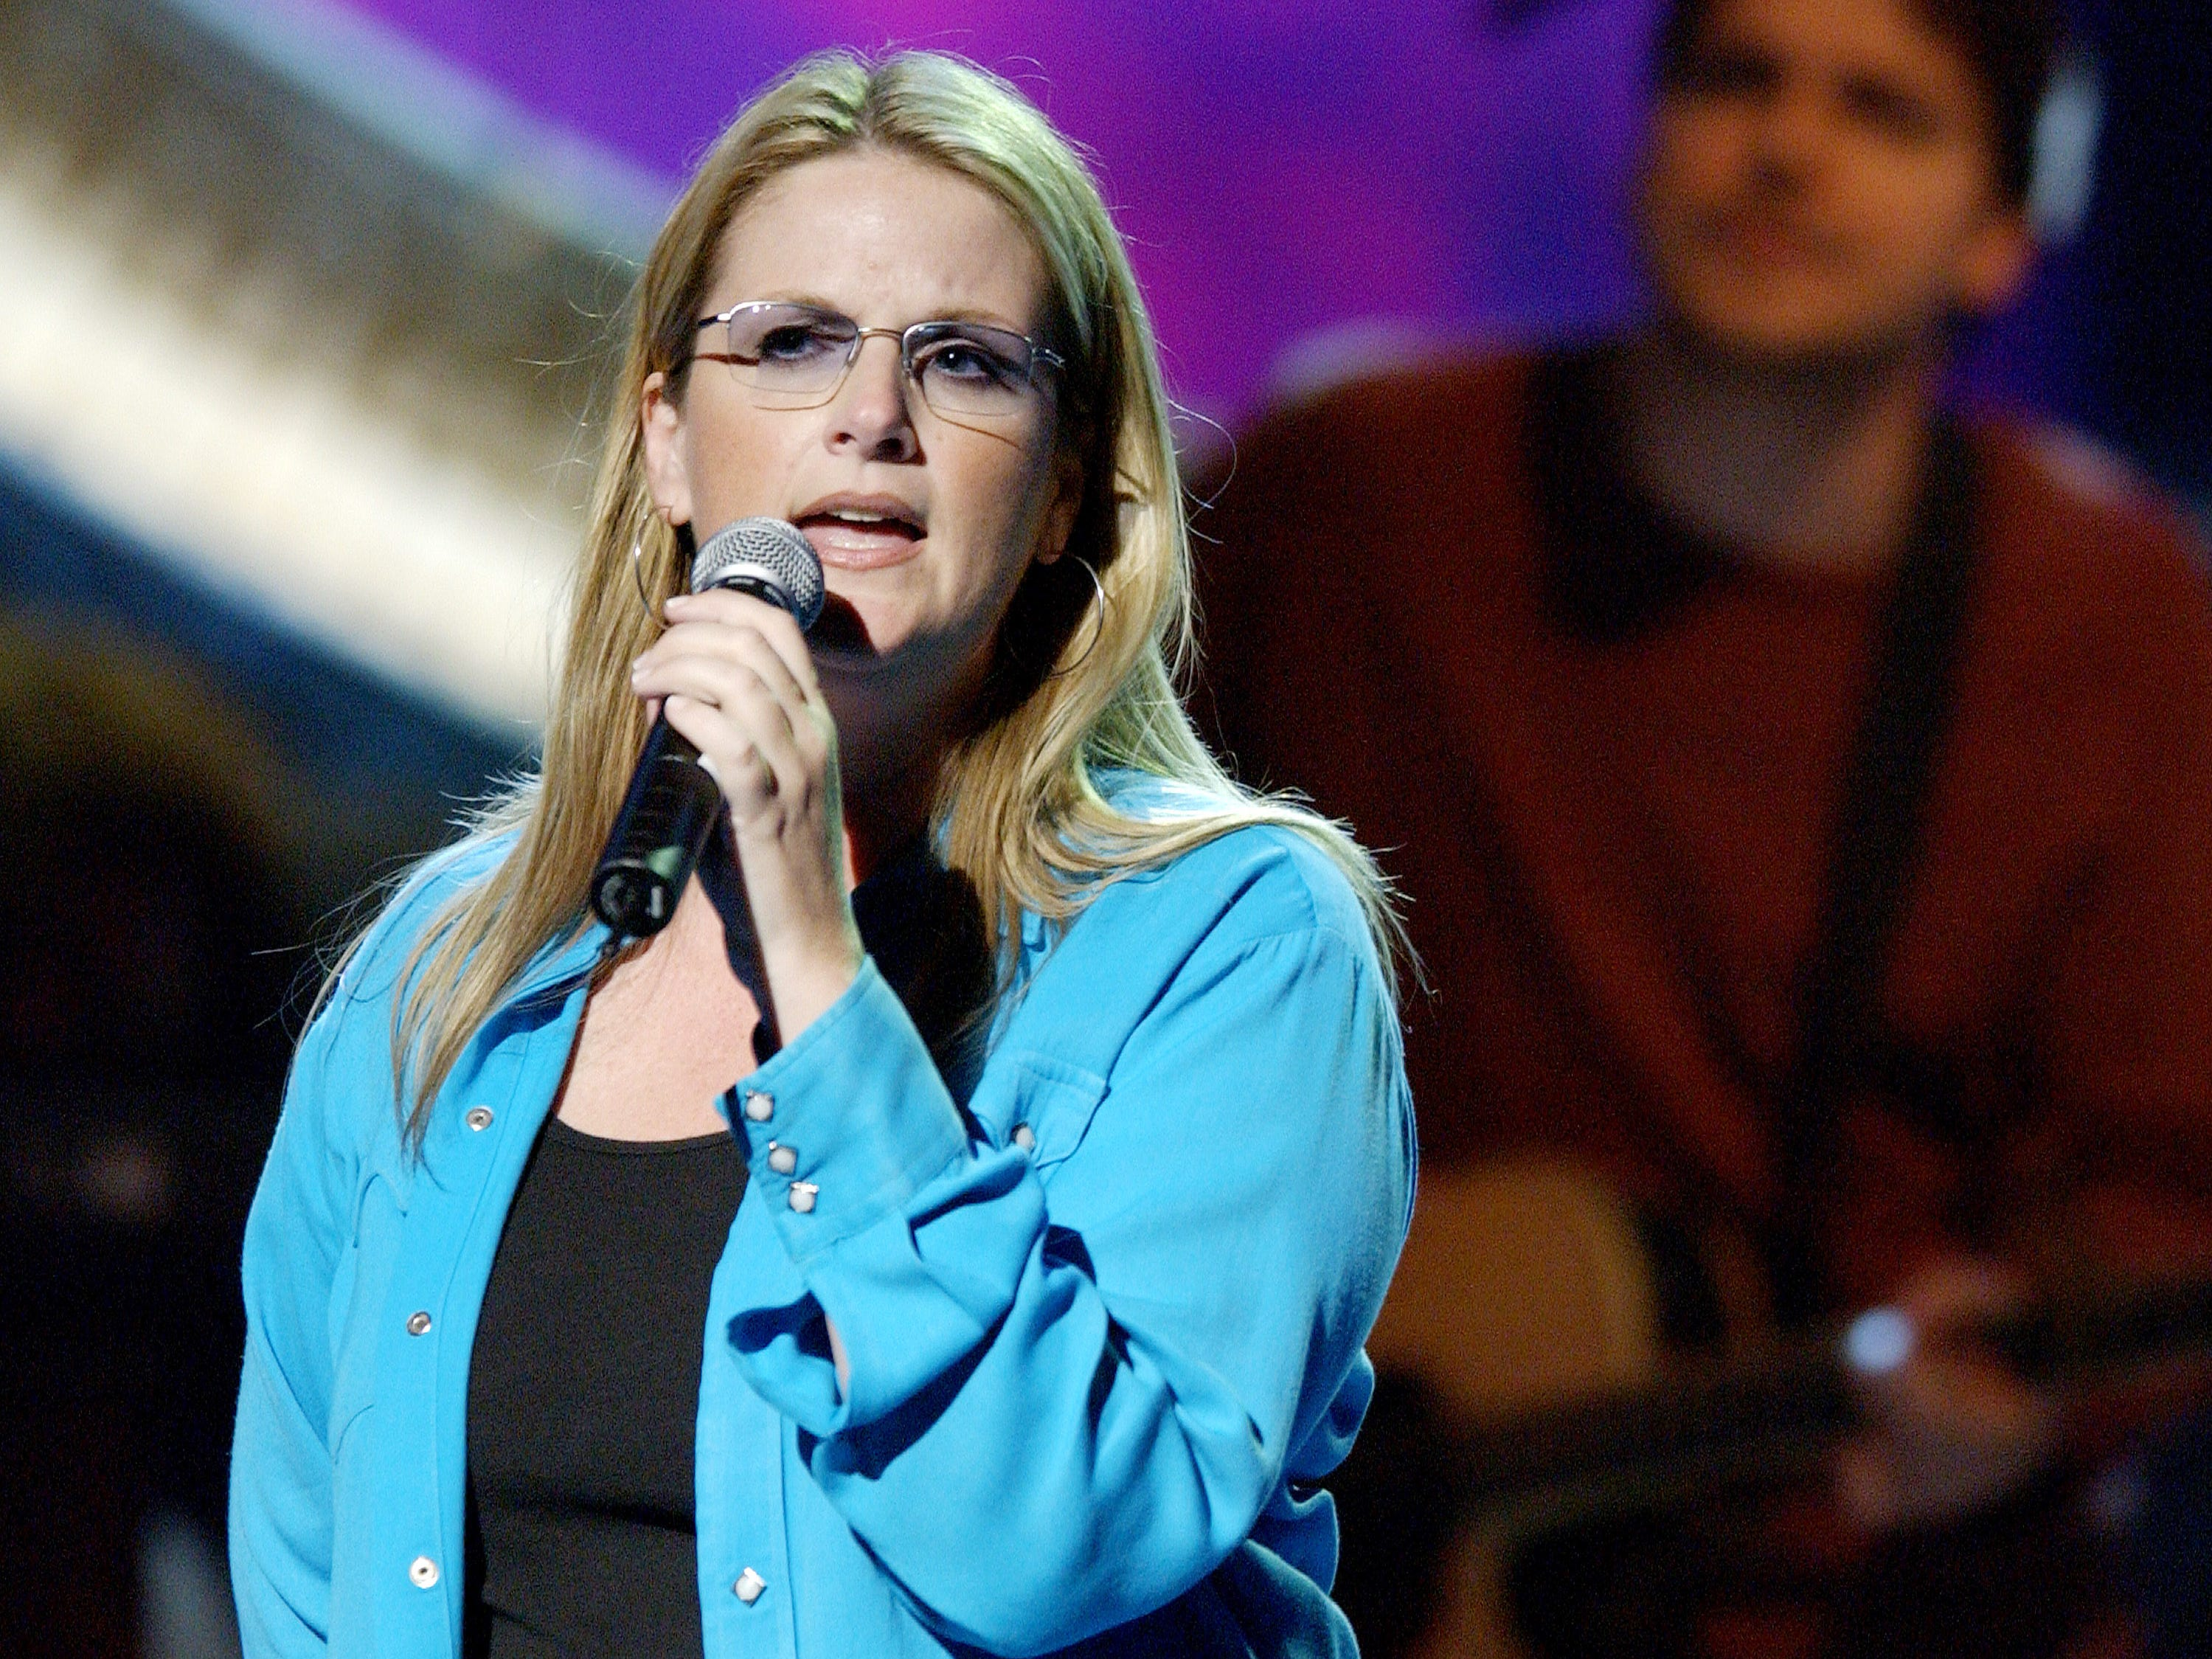 Trisha Yearwood rehearses for the 37th Annual Academy of Country Music Awards May 21, 2002 at Universal Amplitheatre in Los Angeles, CA.